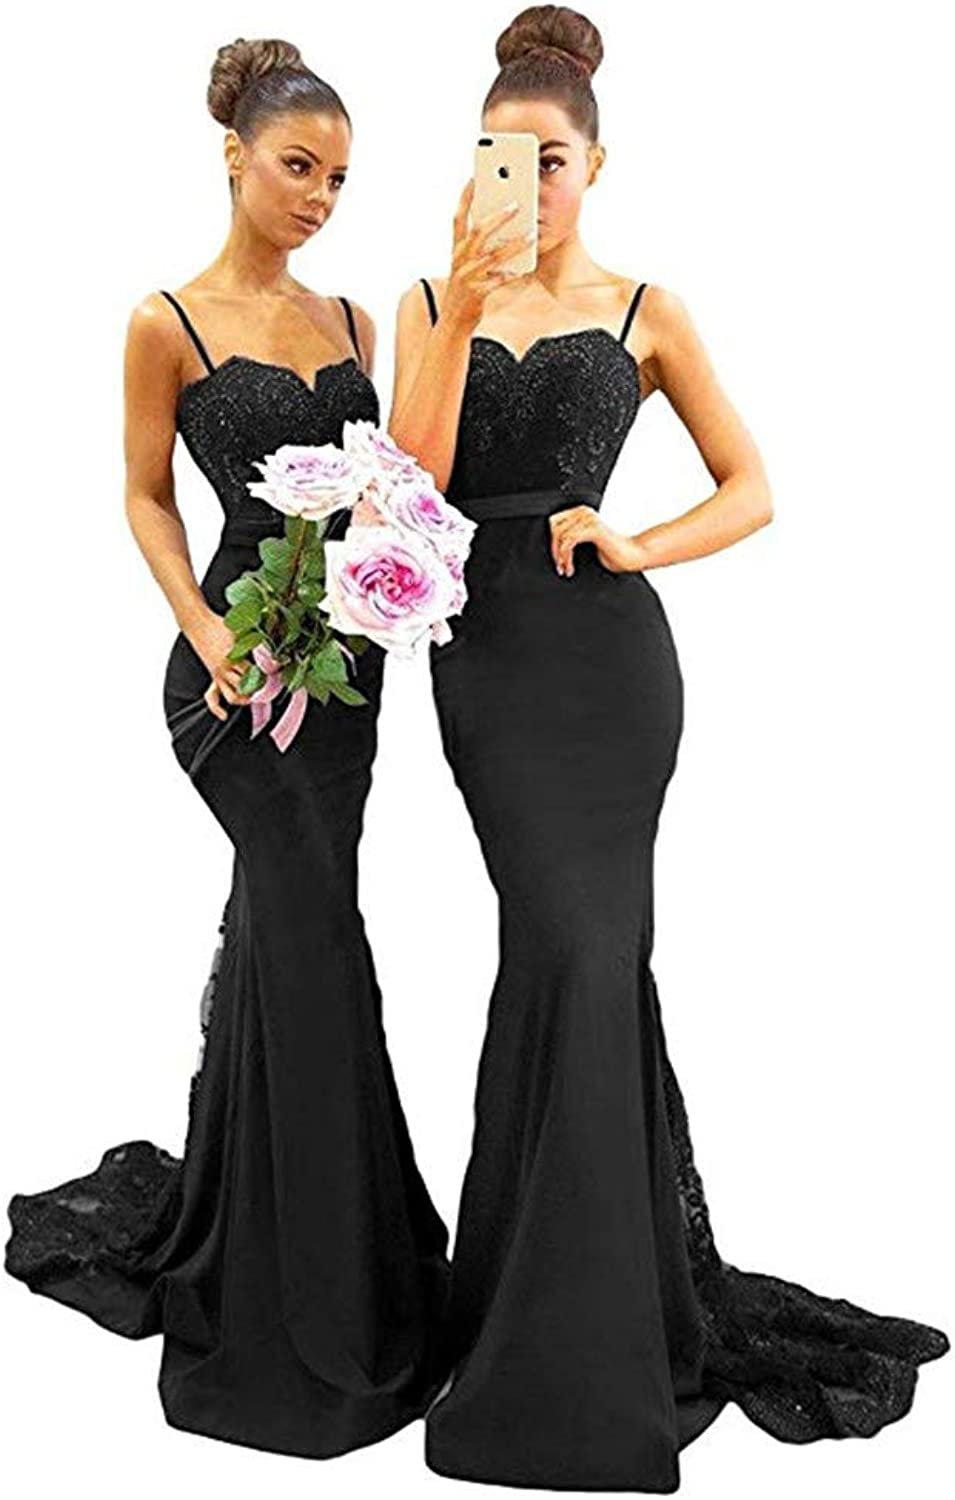 Datangep Bridesmaid Dresses Sexy Navy bluee Mermaid Long Open Back Maid of Honor Gowns